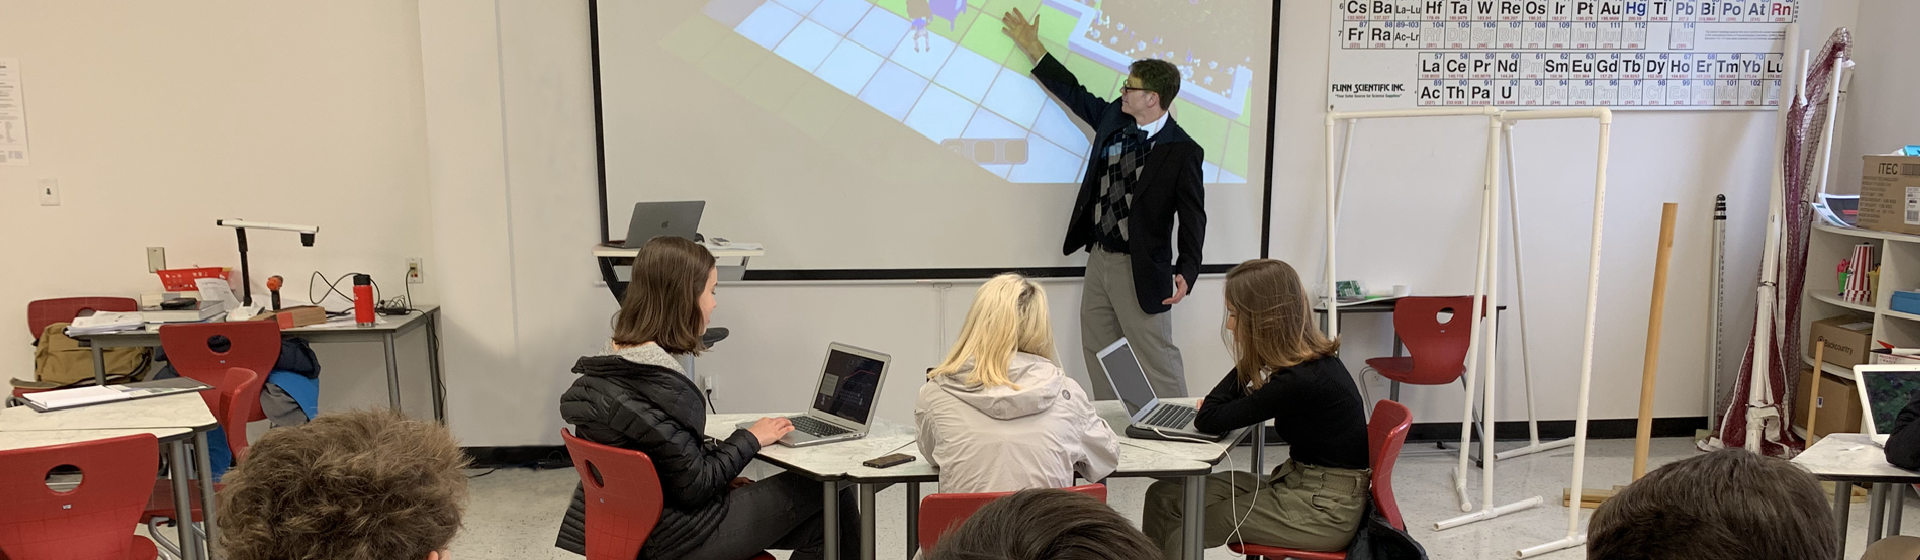 Well-dressed high school teacher demonstrates Plasma Games' Sci-Ops: Global Defense to teach chemistry concepts to his classroom